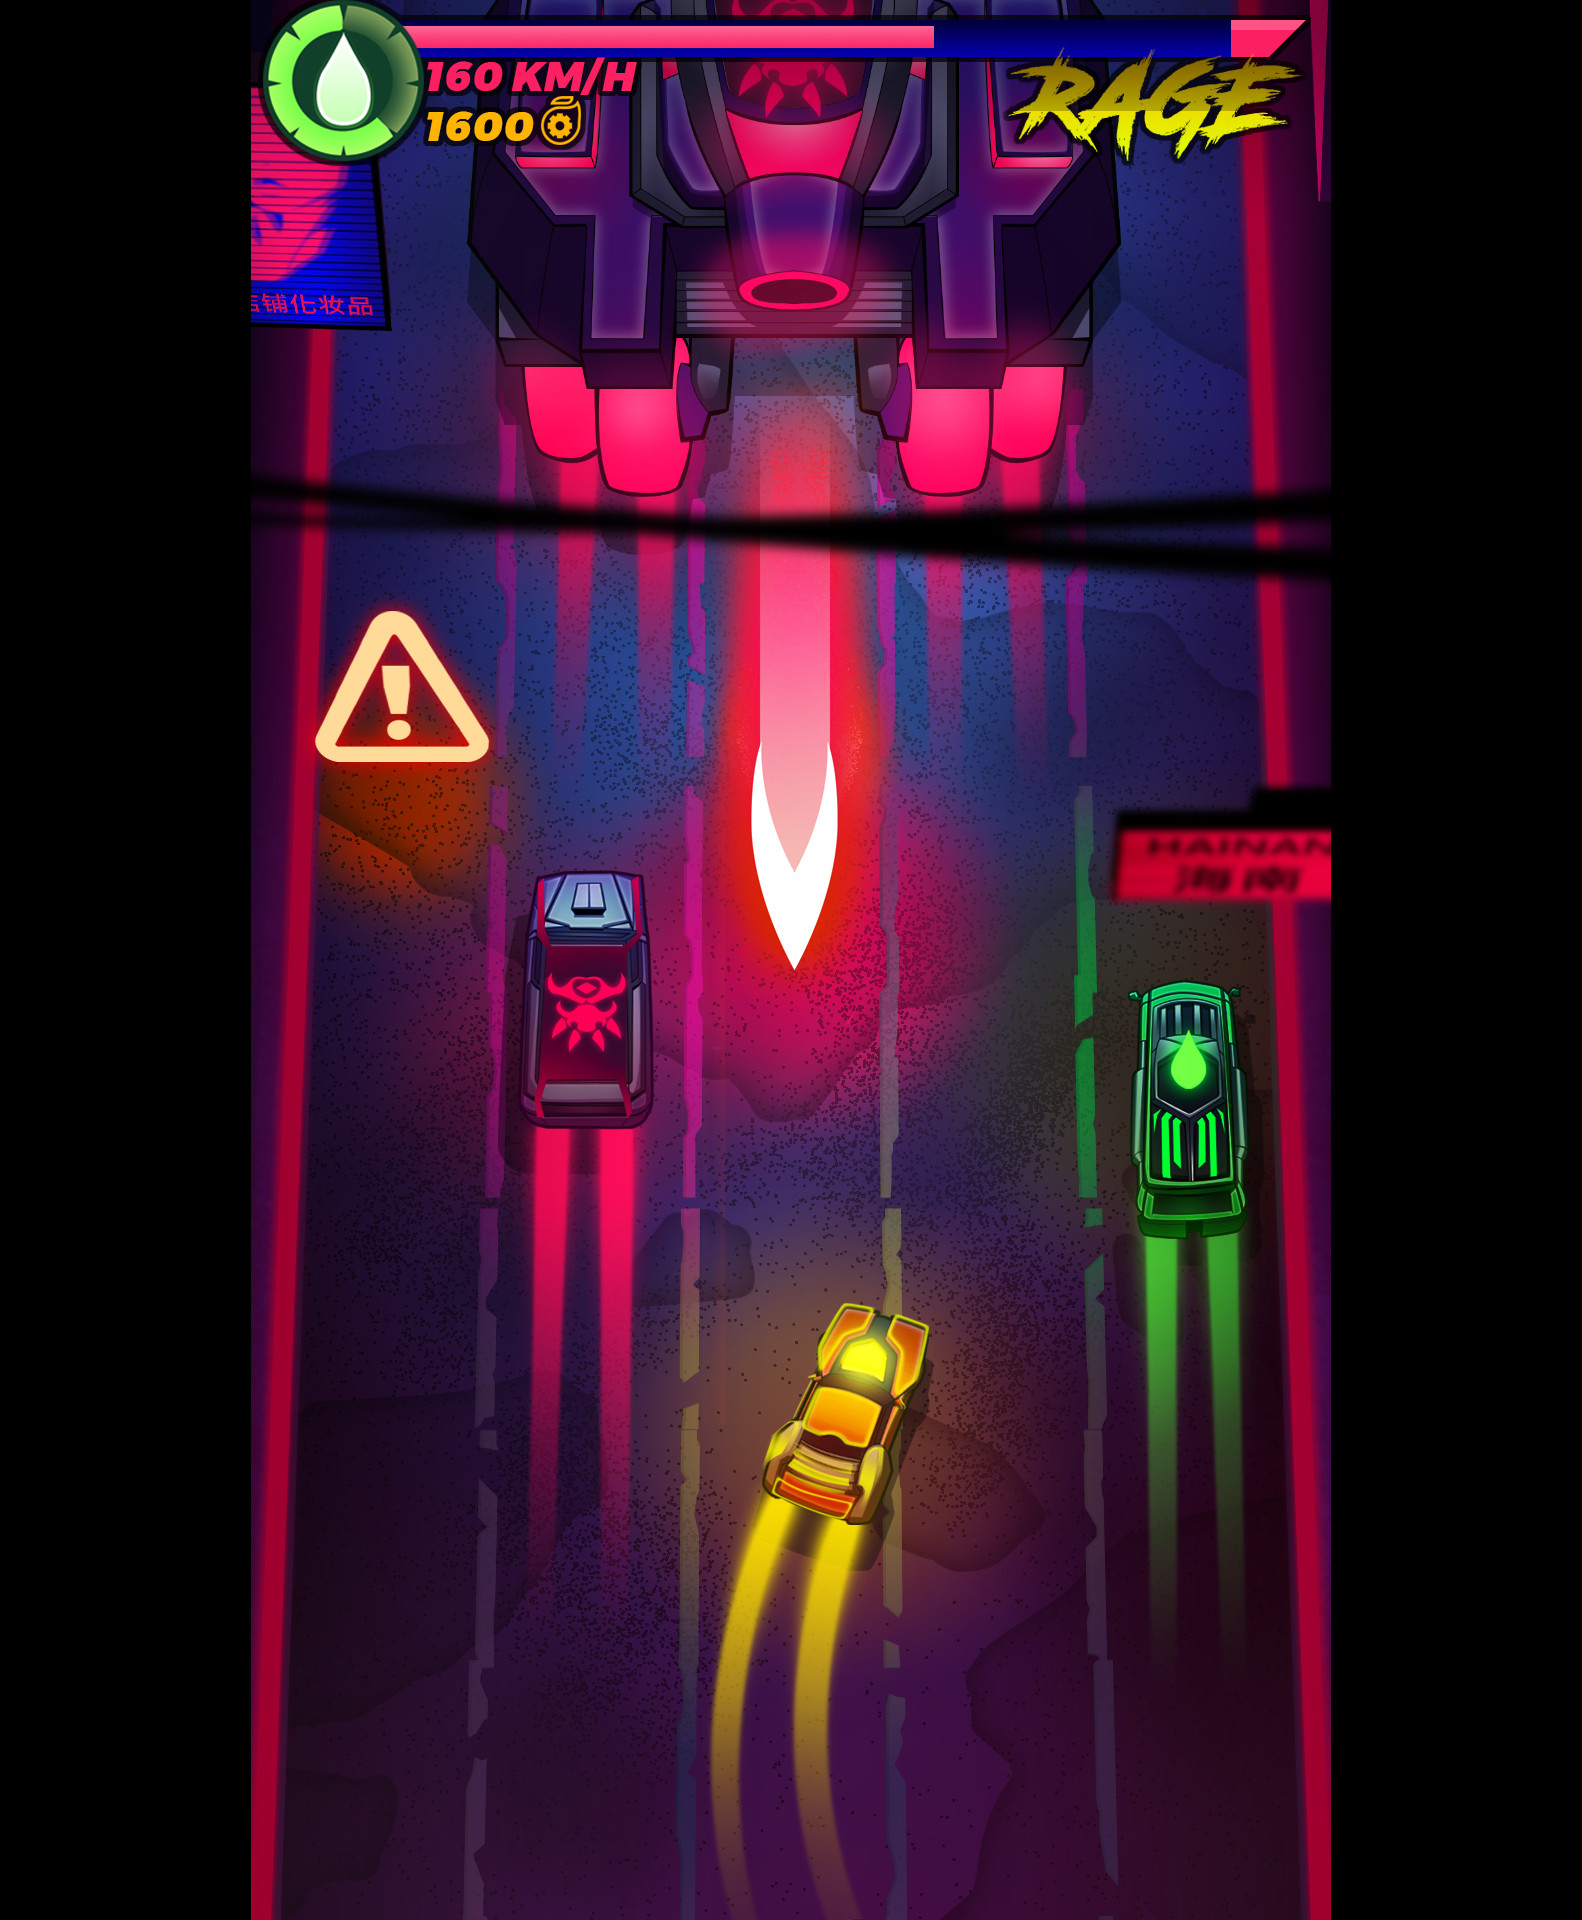 Mockup of the car game